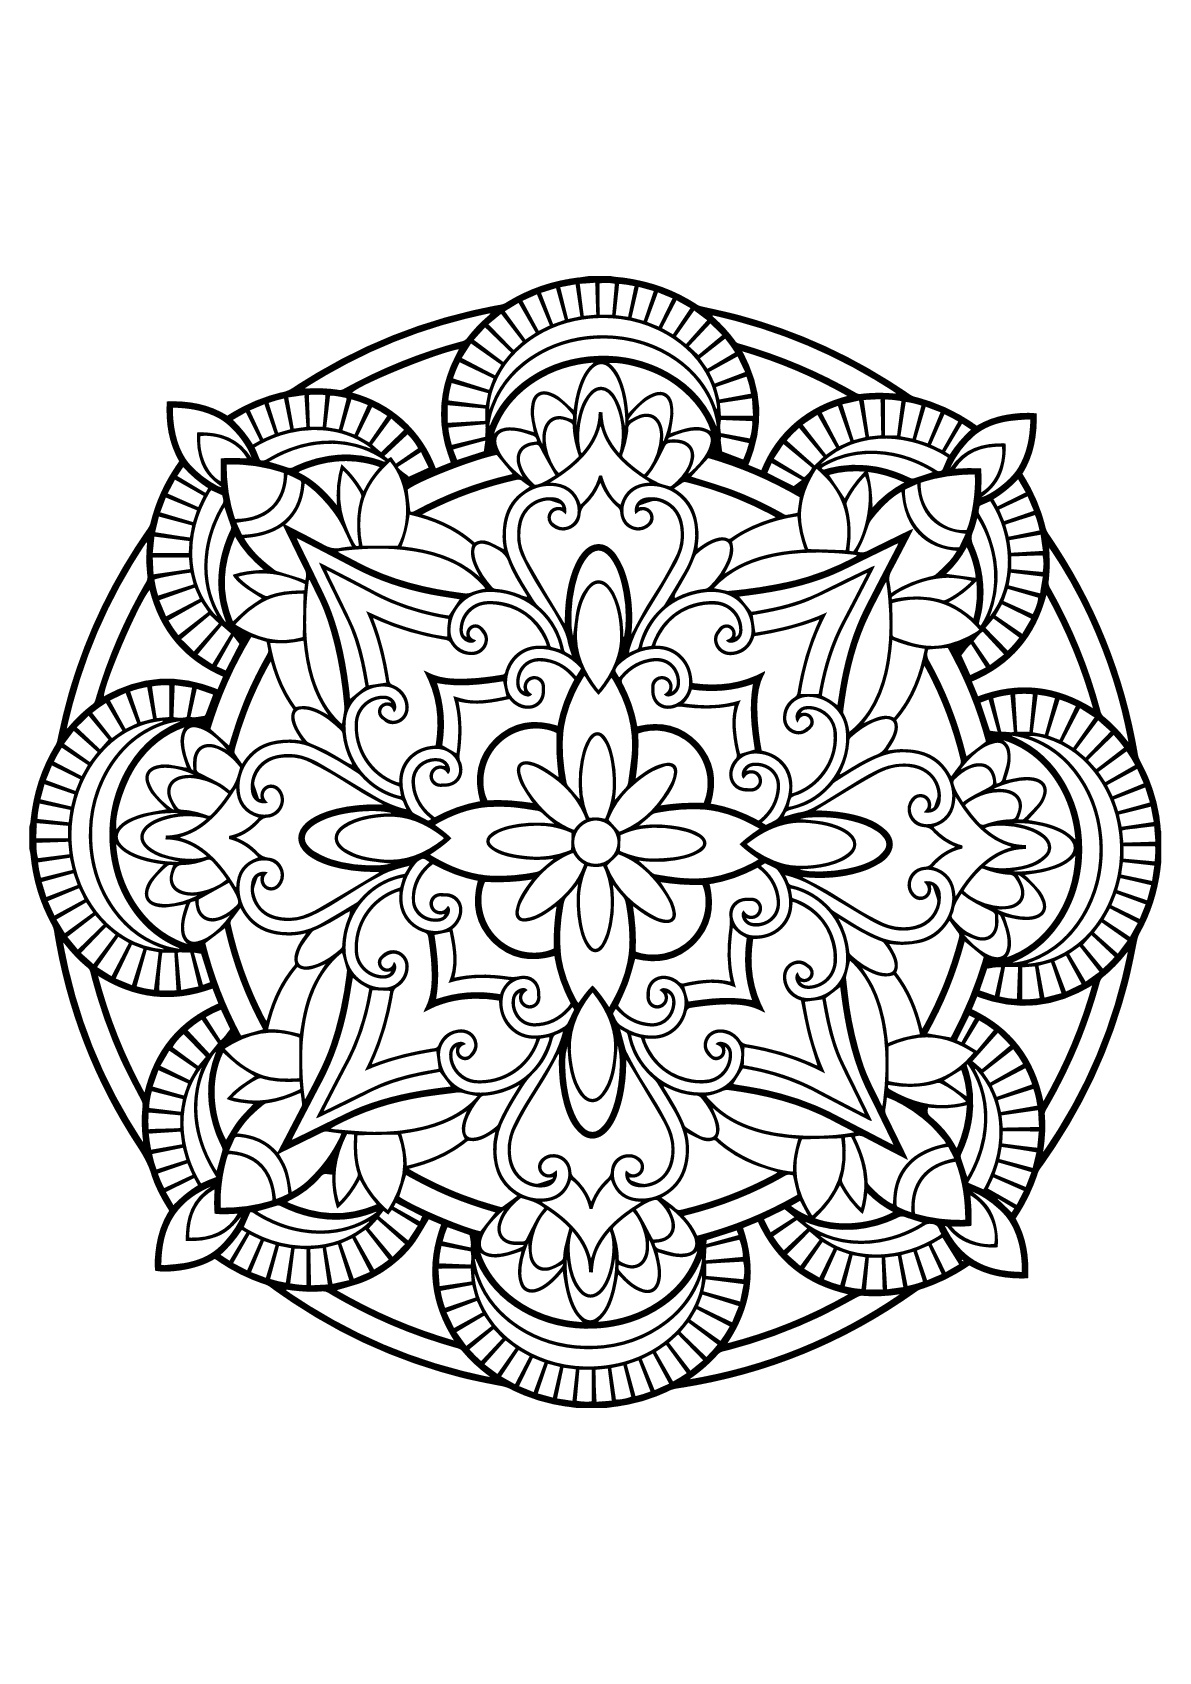 Mandala from free coloring books for adults 23 m alas for Adult coloring pages mandala